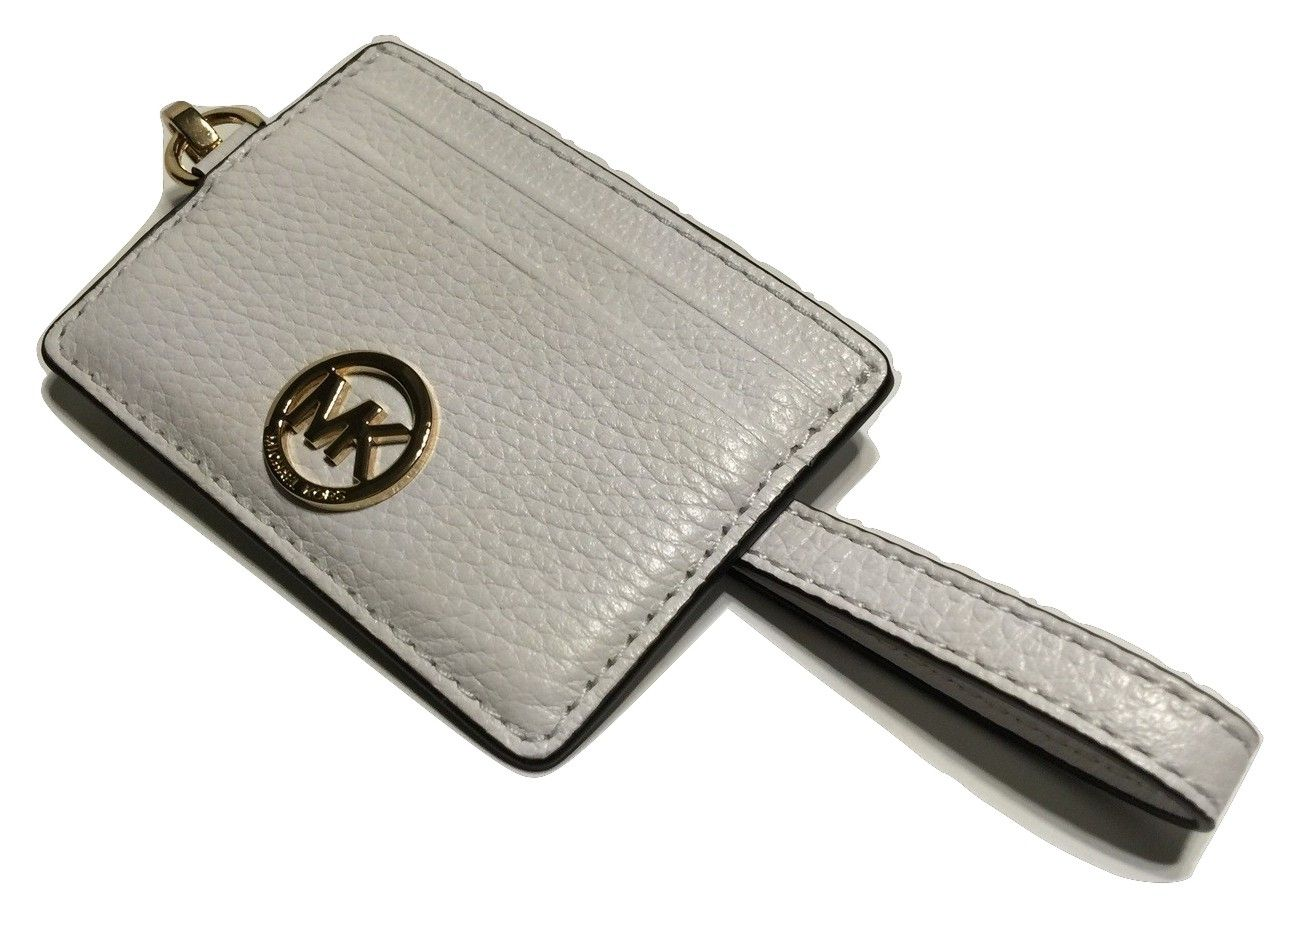 dd19bfd534ba33 Michael Kors Fulton Metro Pass Case Leather Optic White Wristlet. Get the  trendiest Clutch of the season! The Michael Kors Fulton Metro Pass Case  Leather ...